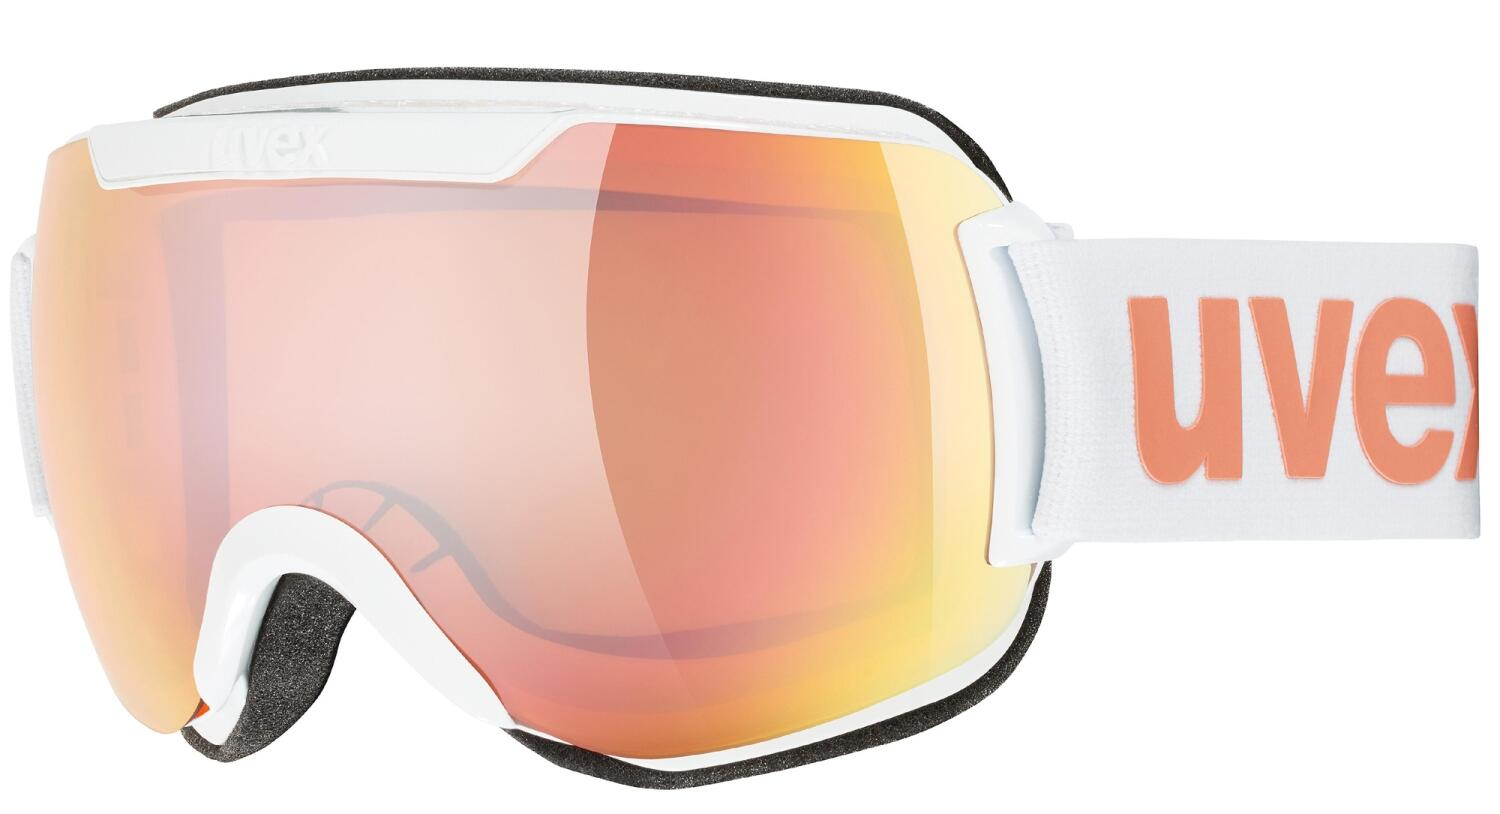 uvex-downhill-2000-cv-skibrille-farbe-1030-white-mirror-rose-colorvision-orange-s2-